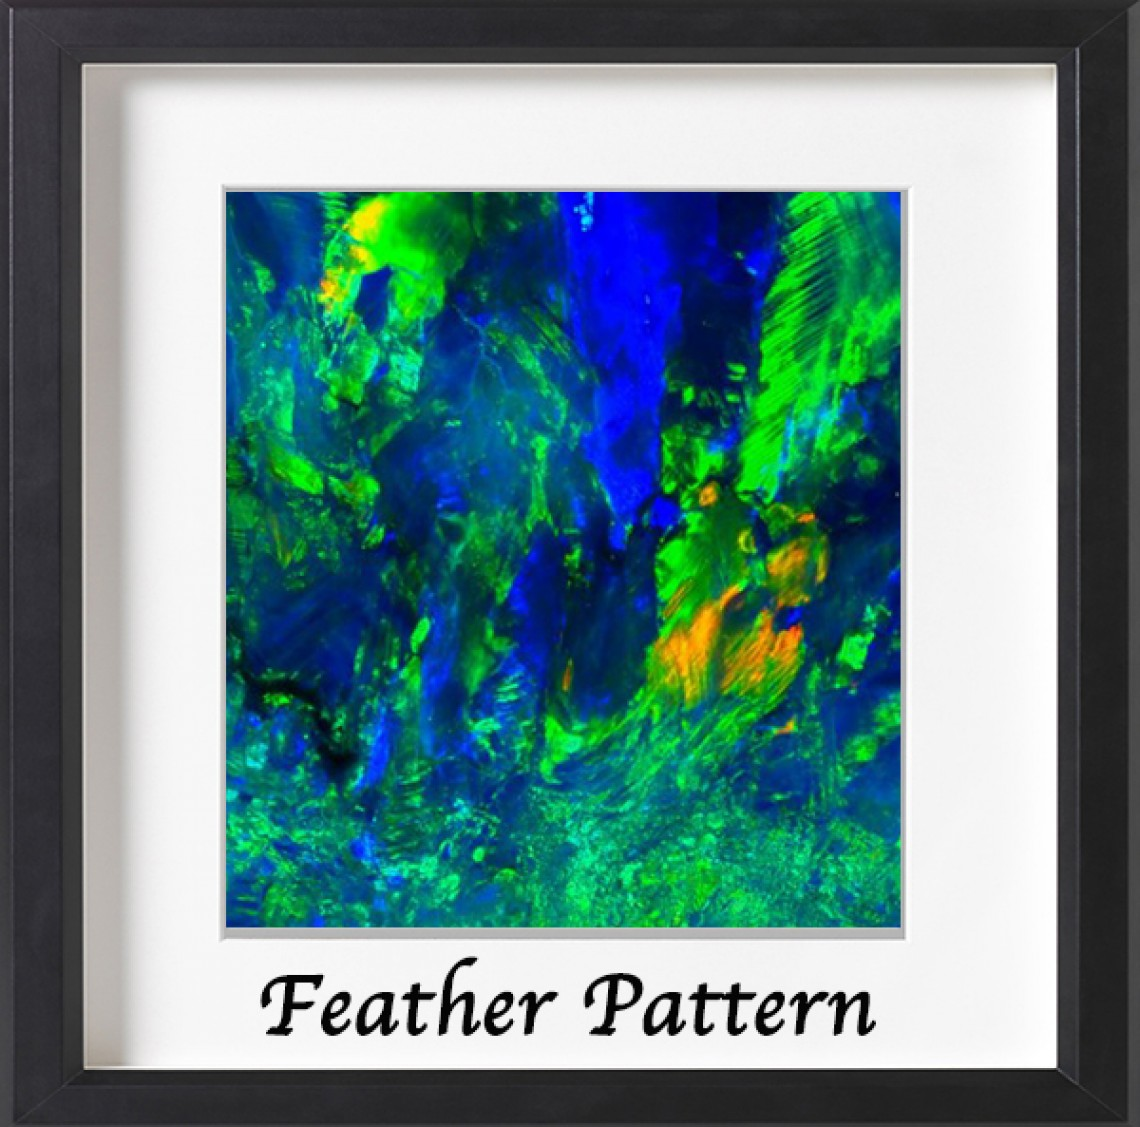 Opal Patterns - The Ultimate Guide